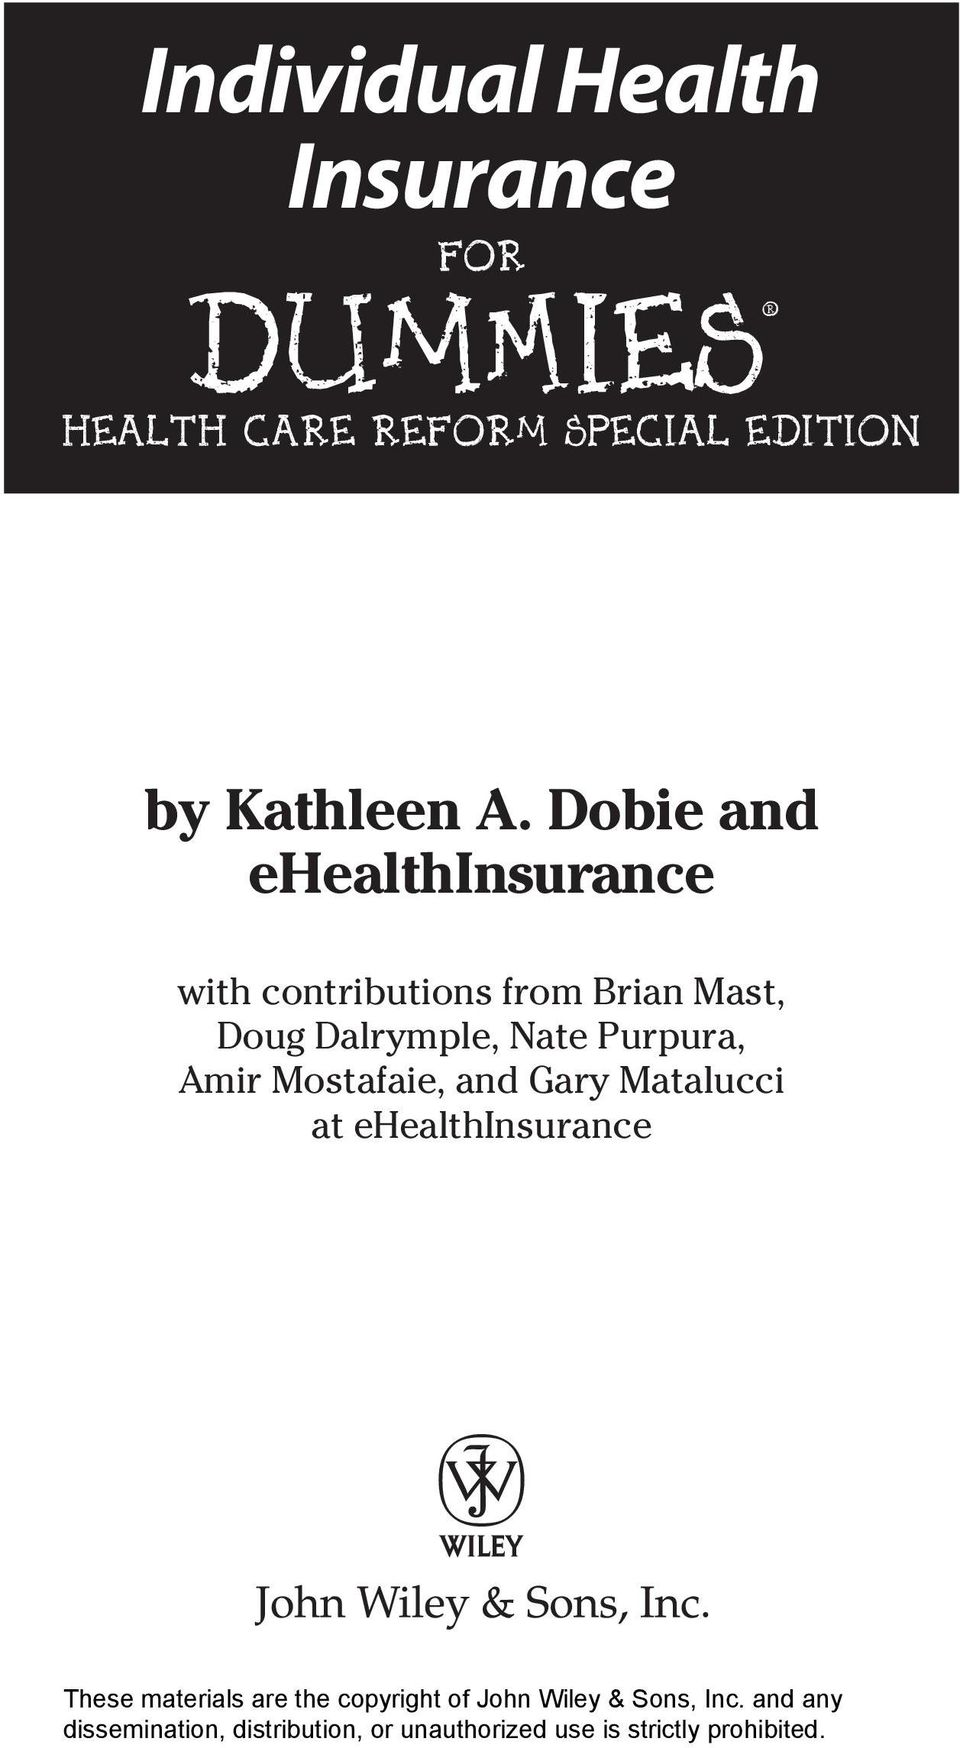 Dobie and ehealthinsurance with contributions from Brian